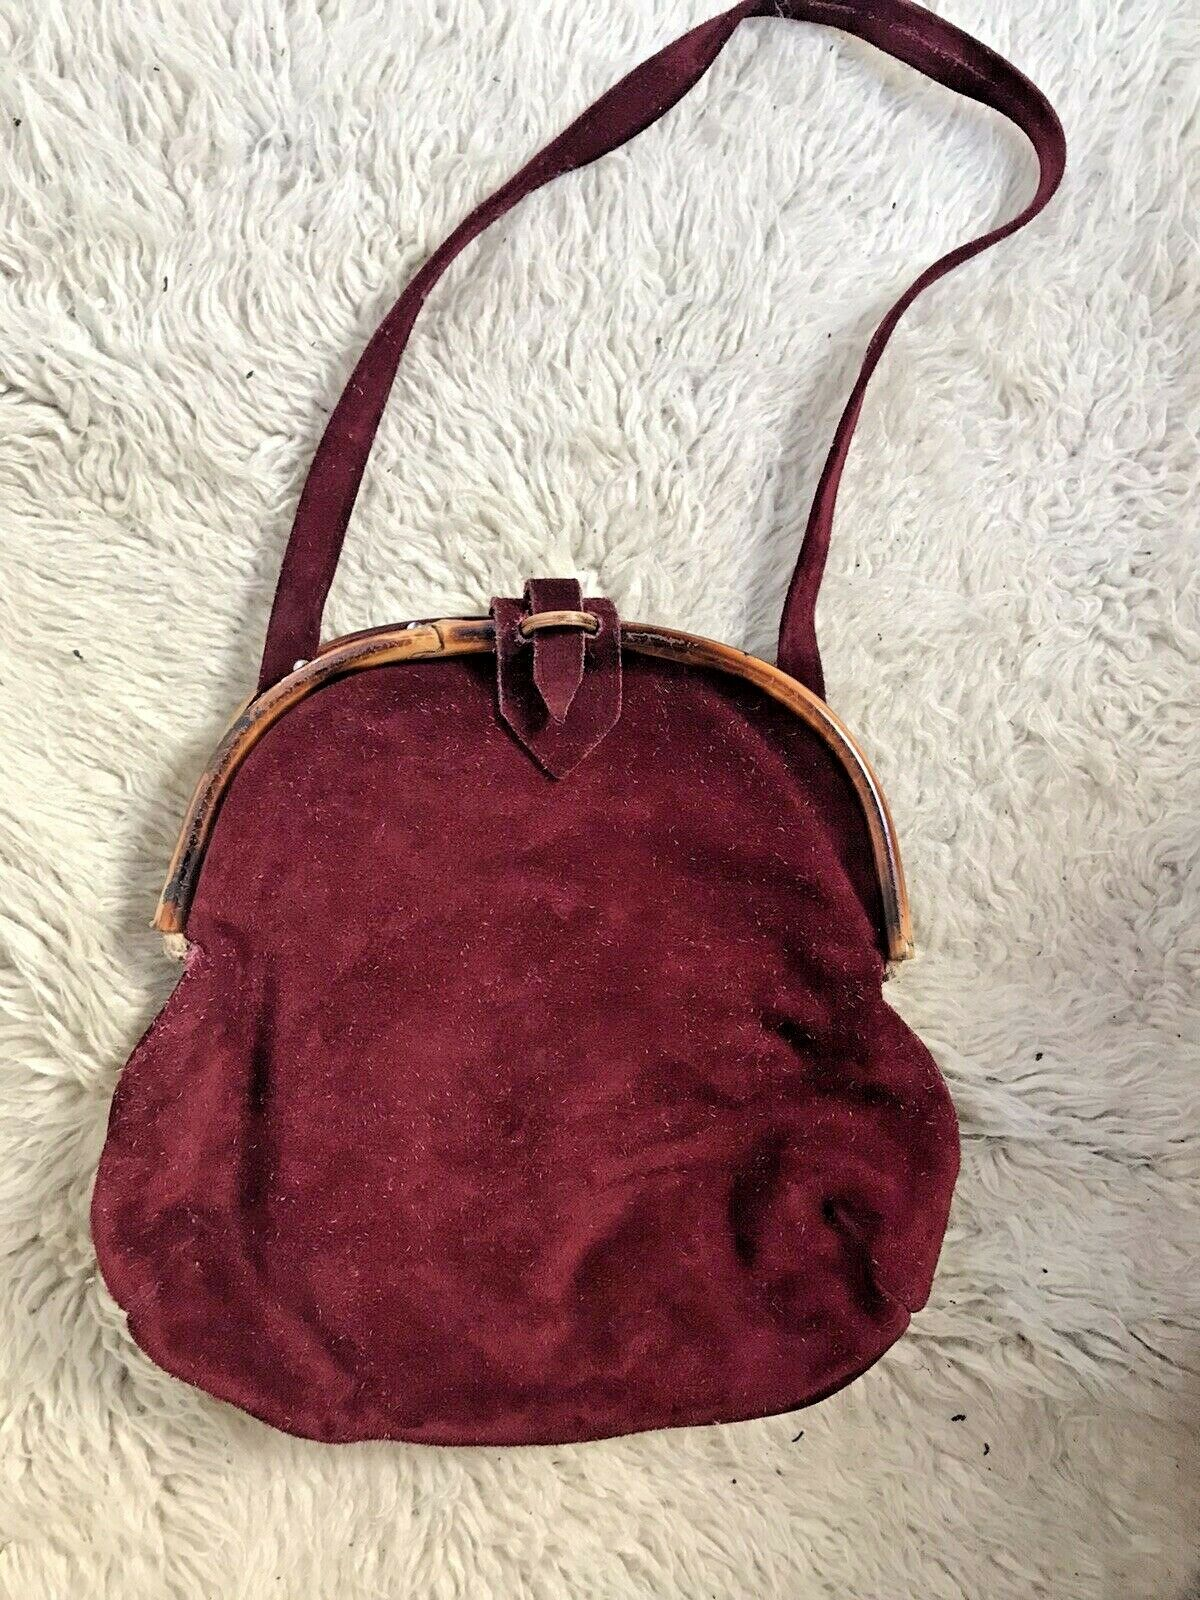 60's Vintage Suede Leather & Bamboo Purse made in Italy